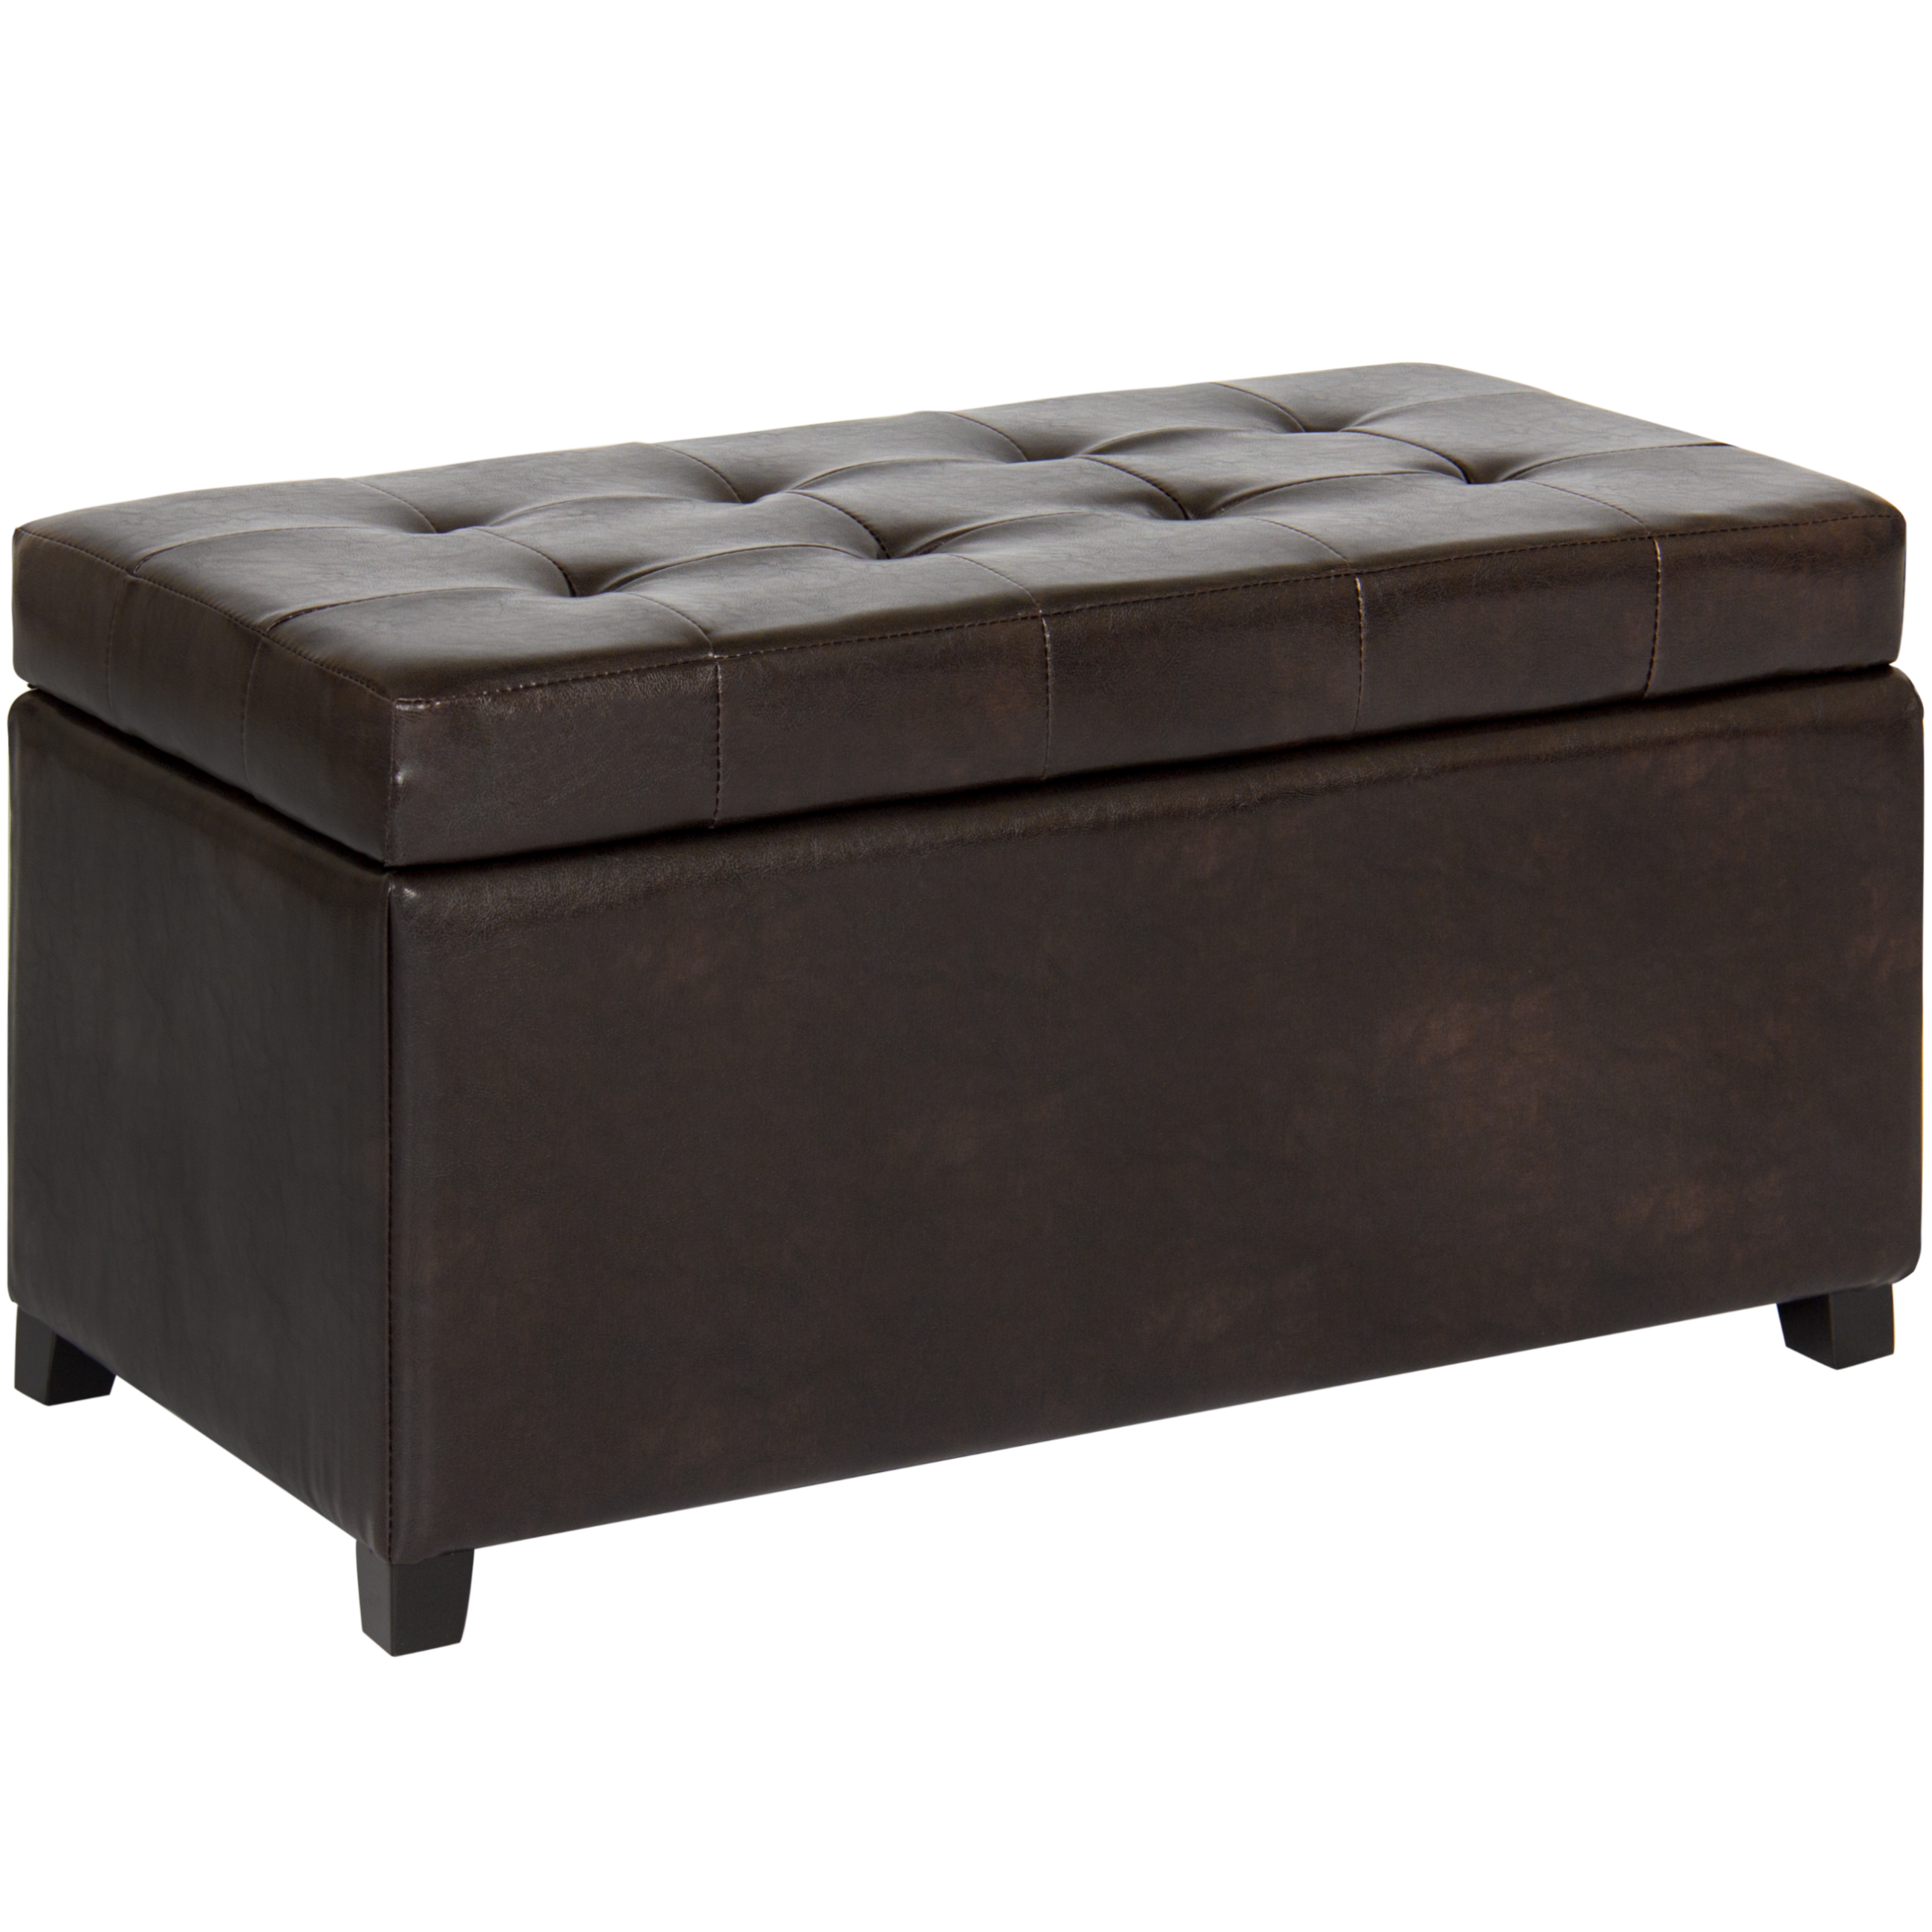 Ordinaire Best Choice Products Tufted Leather Storage Ottoman Bench For Home, Living  Room W/ Lid